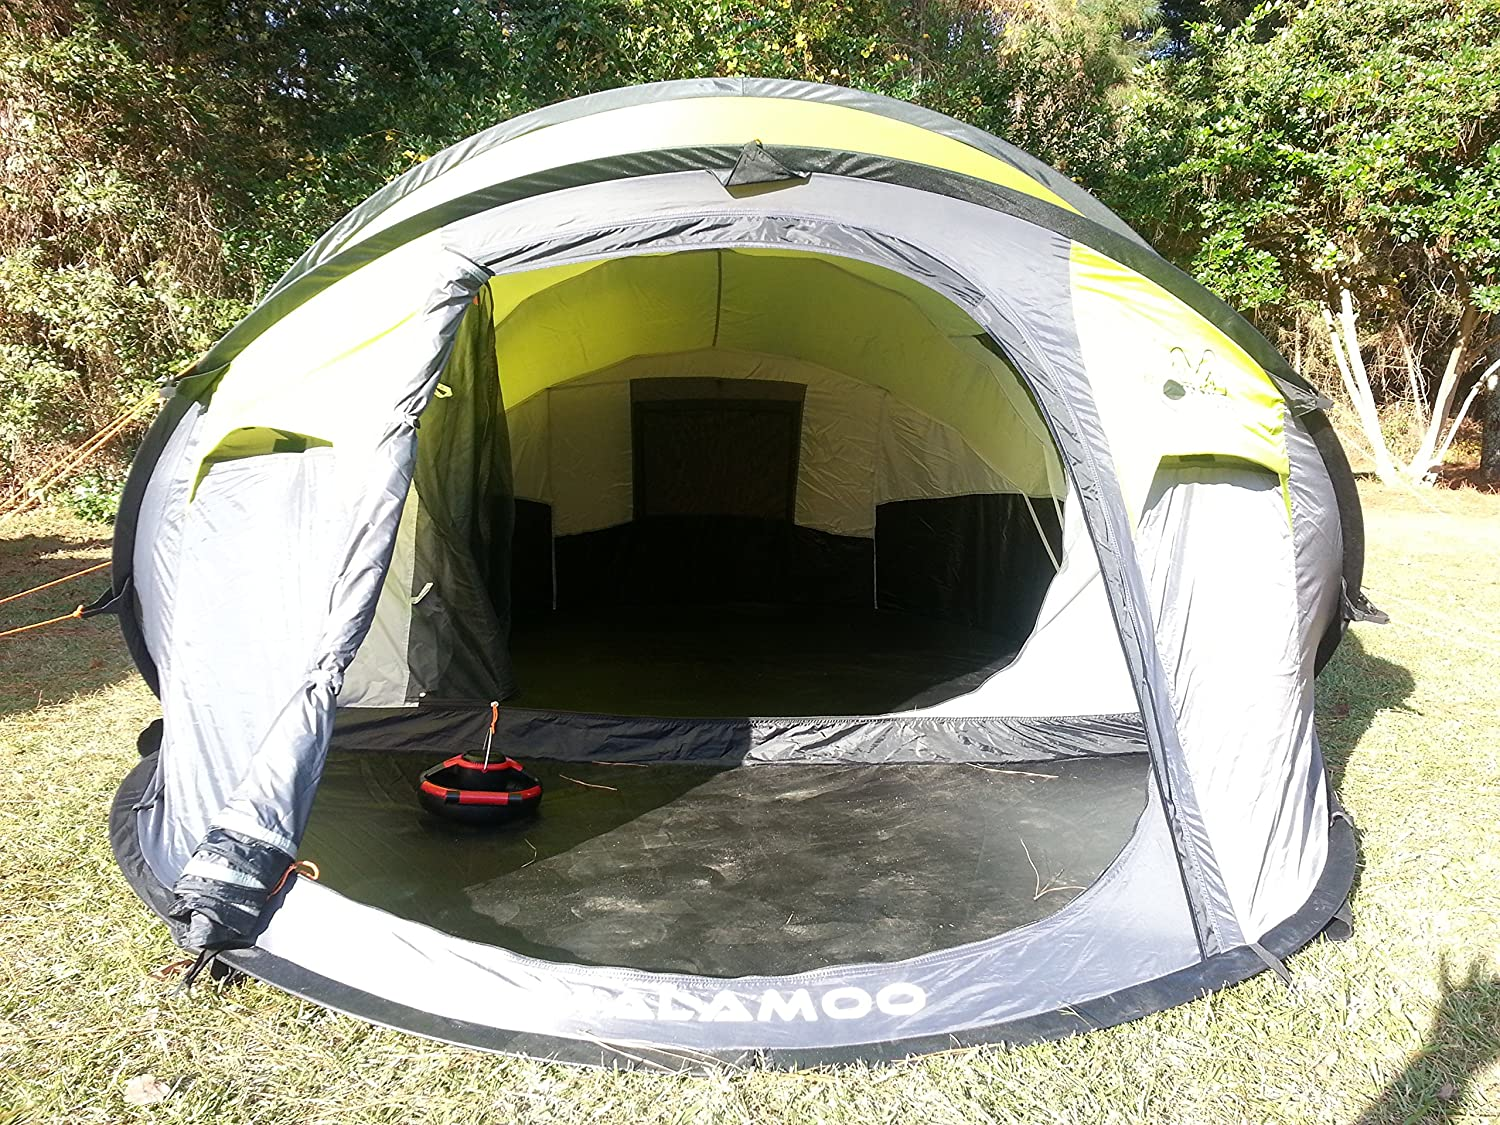 Amazon.com  Malamoo Mega 3 Second 4 Person Waterproof Tent  Sports u0026 Outdoors & Amazon.com : Malamoo Mega 3 Second 4 Person Waterproof Tent ...